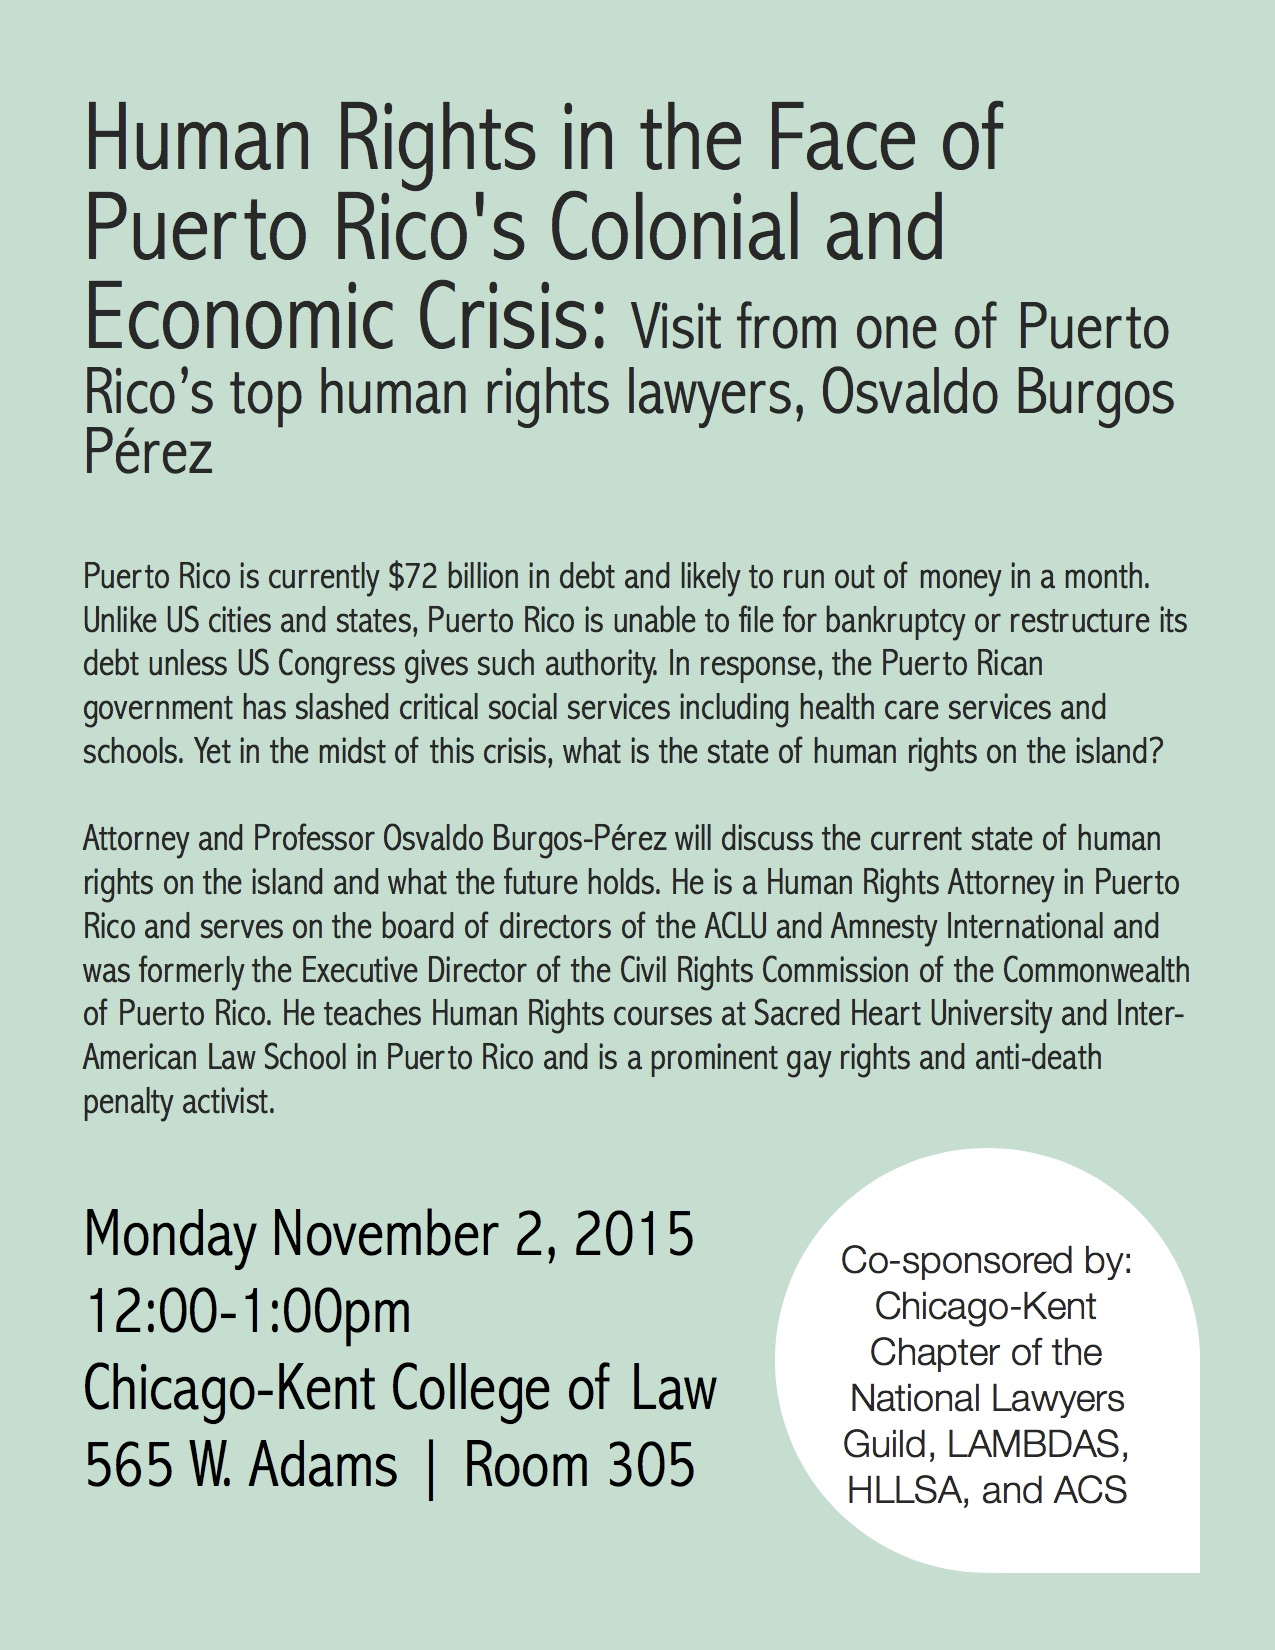 Human Rights in the Face of Puerto Rico's Colonial and ...